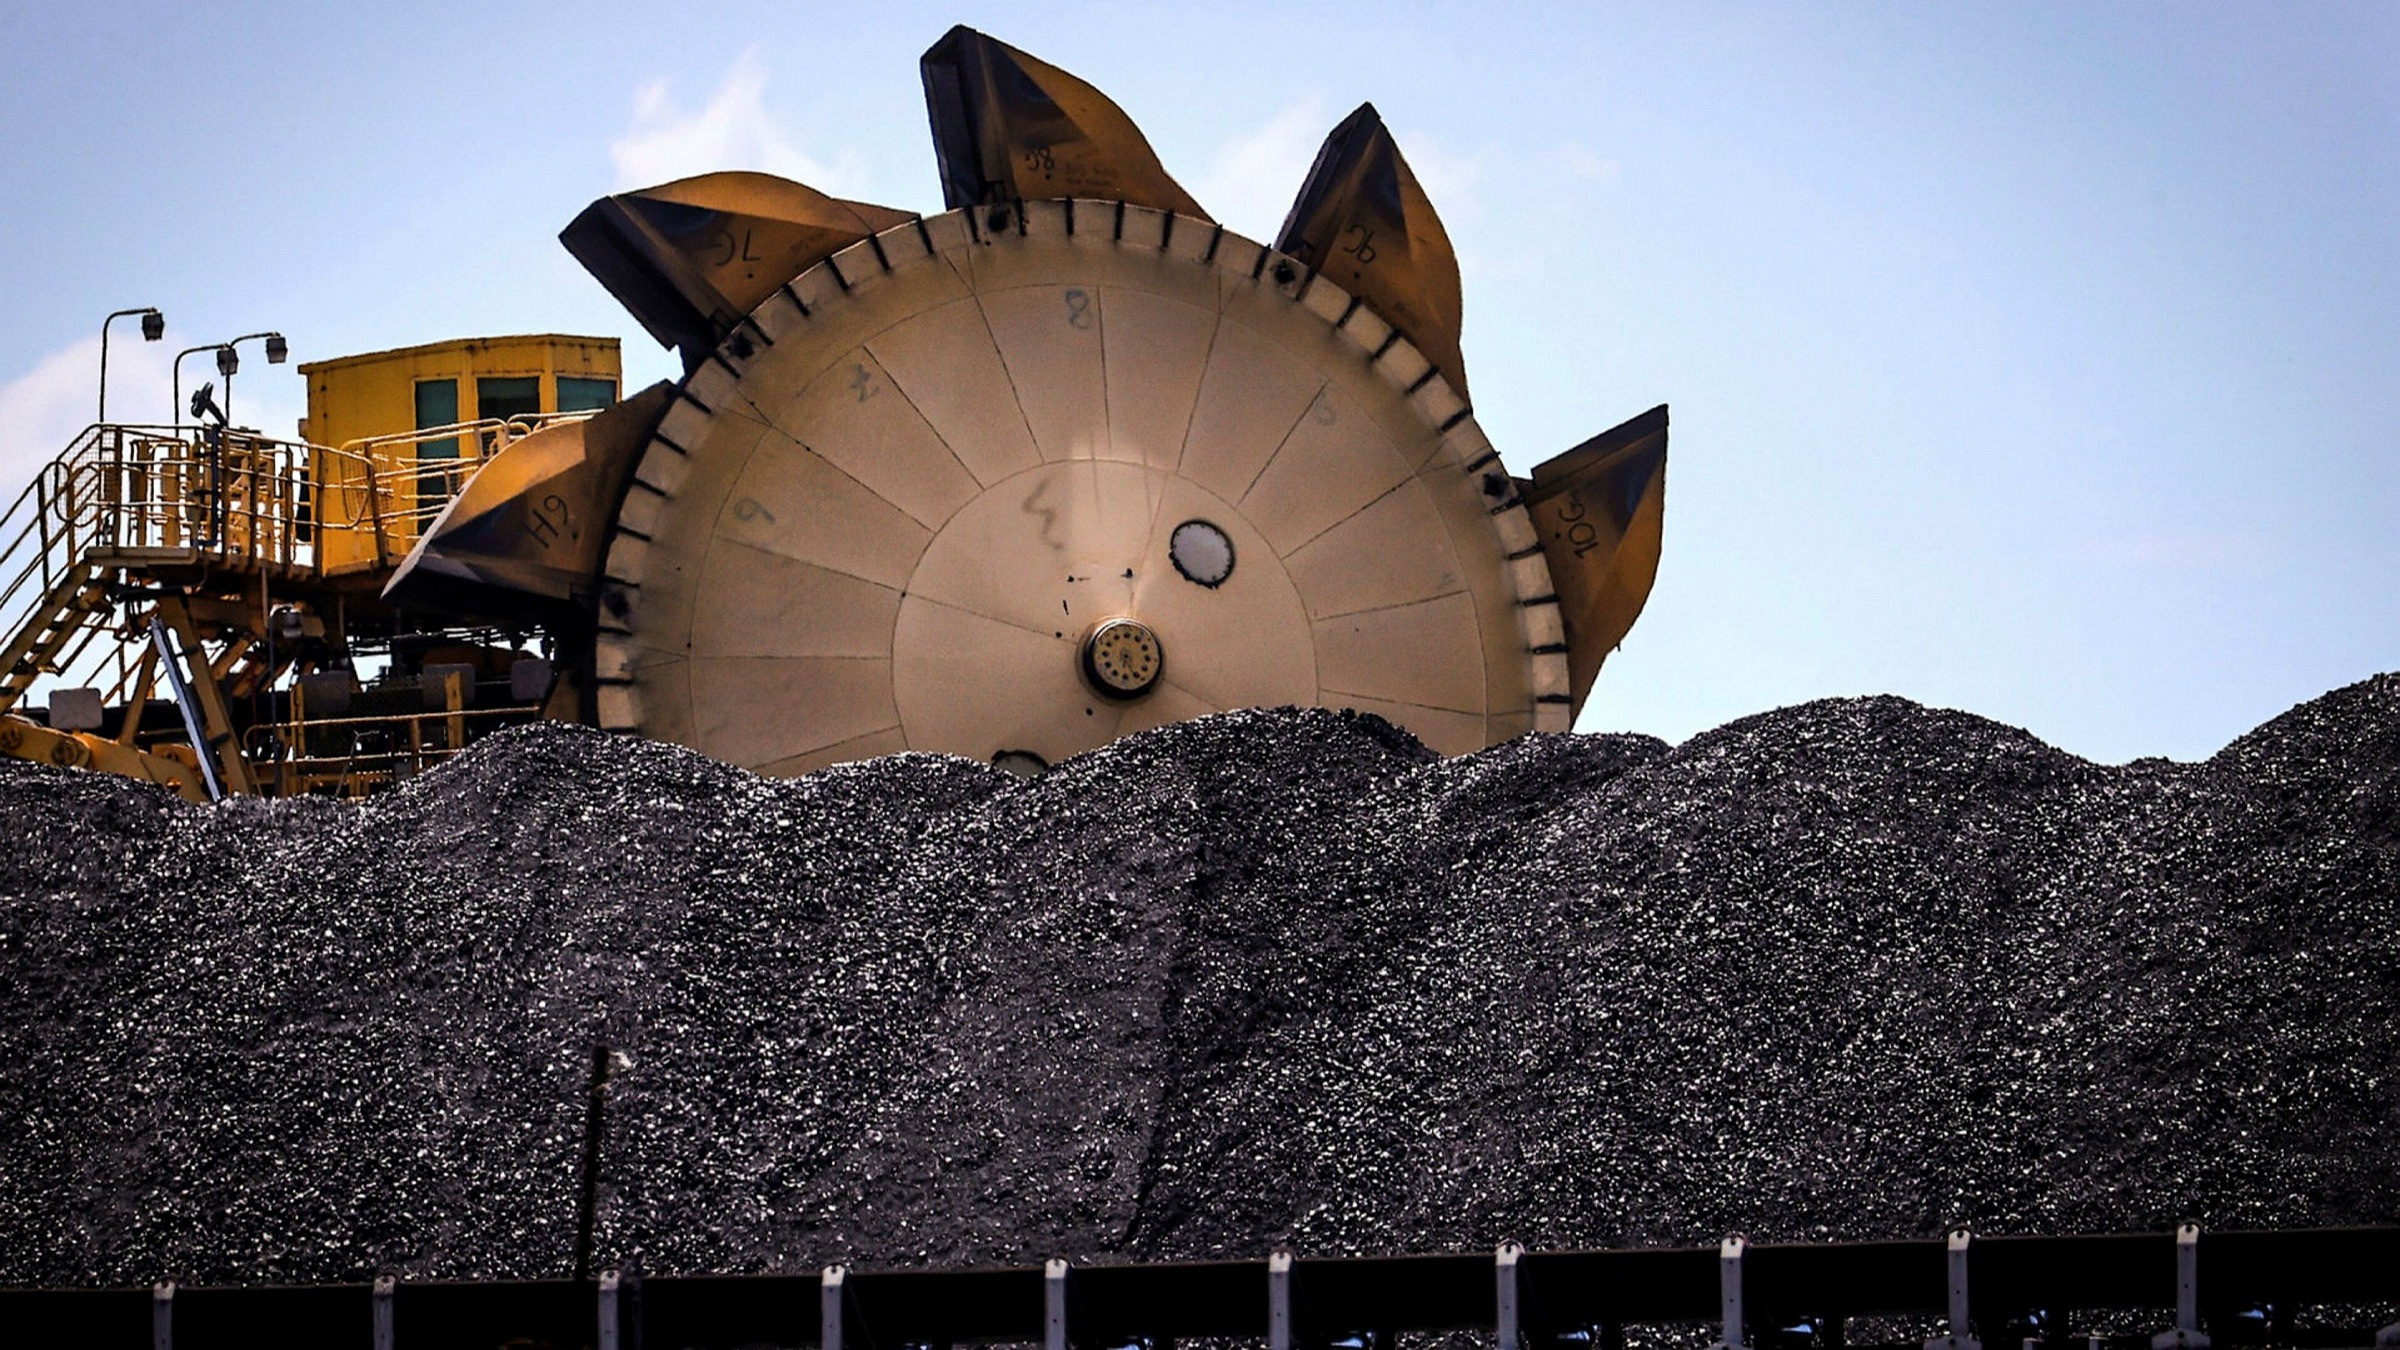 ft.com - Neil Hume, Natural Resources Editor - Thermal coal prices soar as demand for electricity rebounds